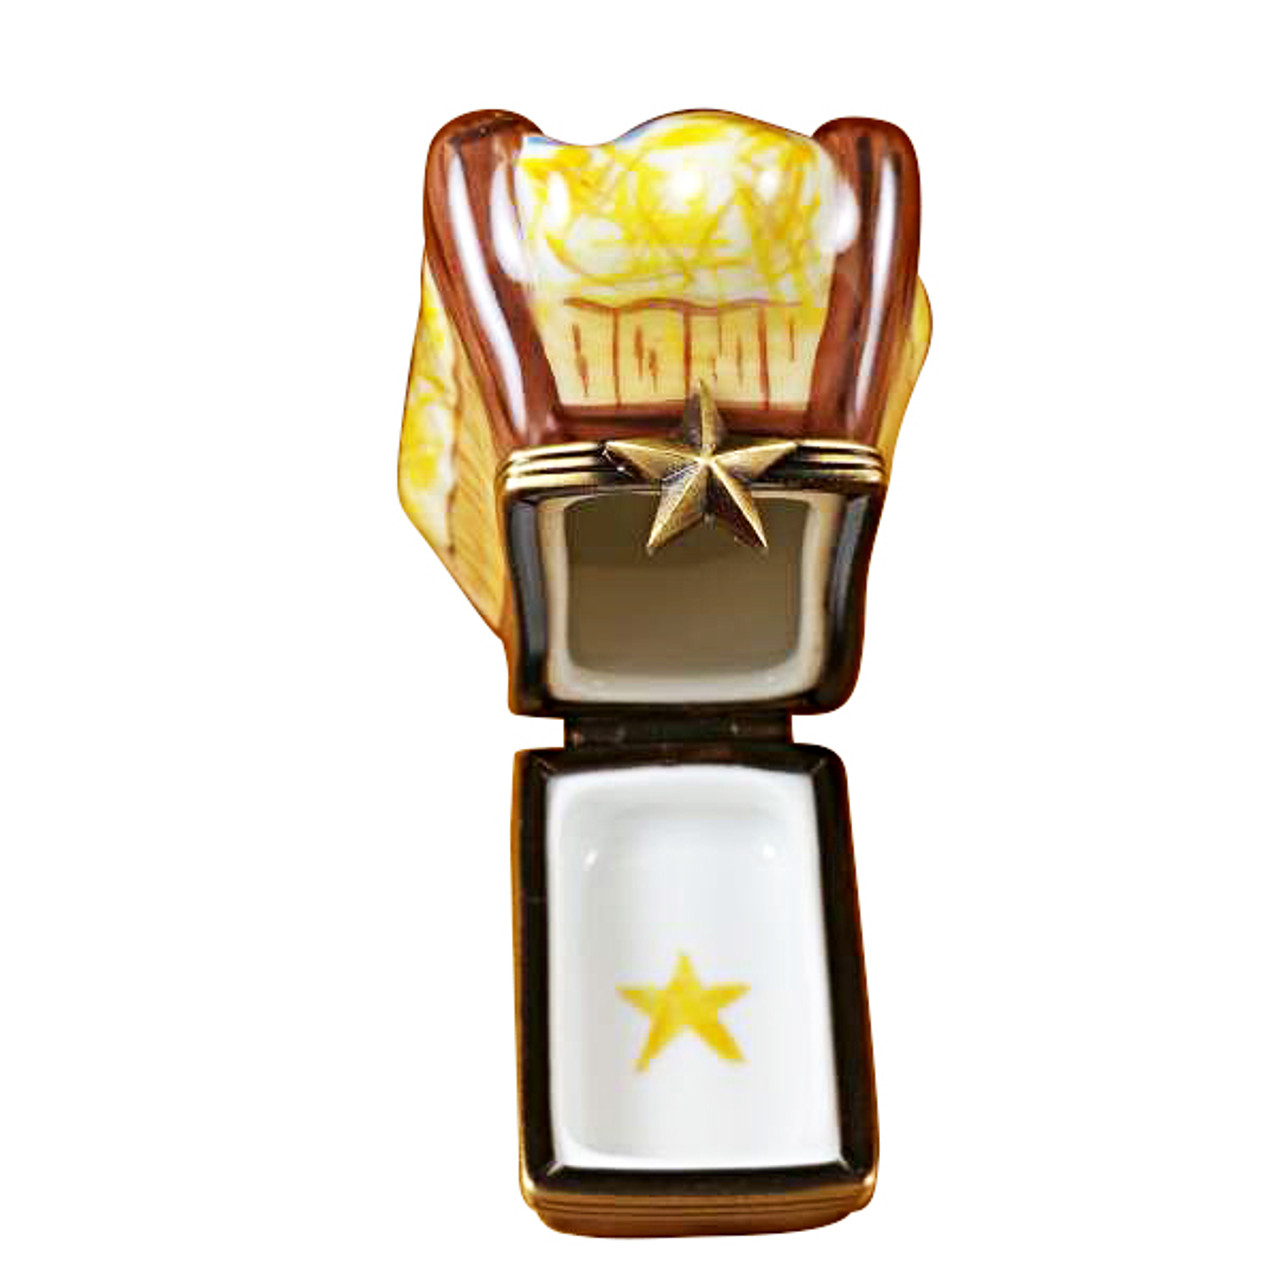 Limoges Imports BABY JESUS Limoges Box TR609-G